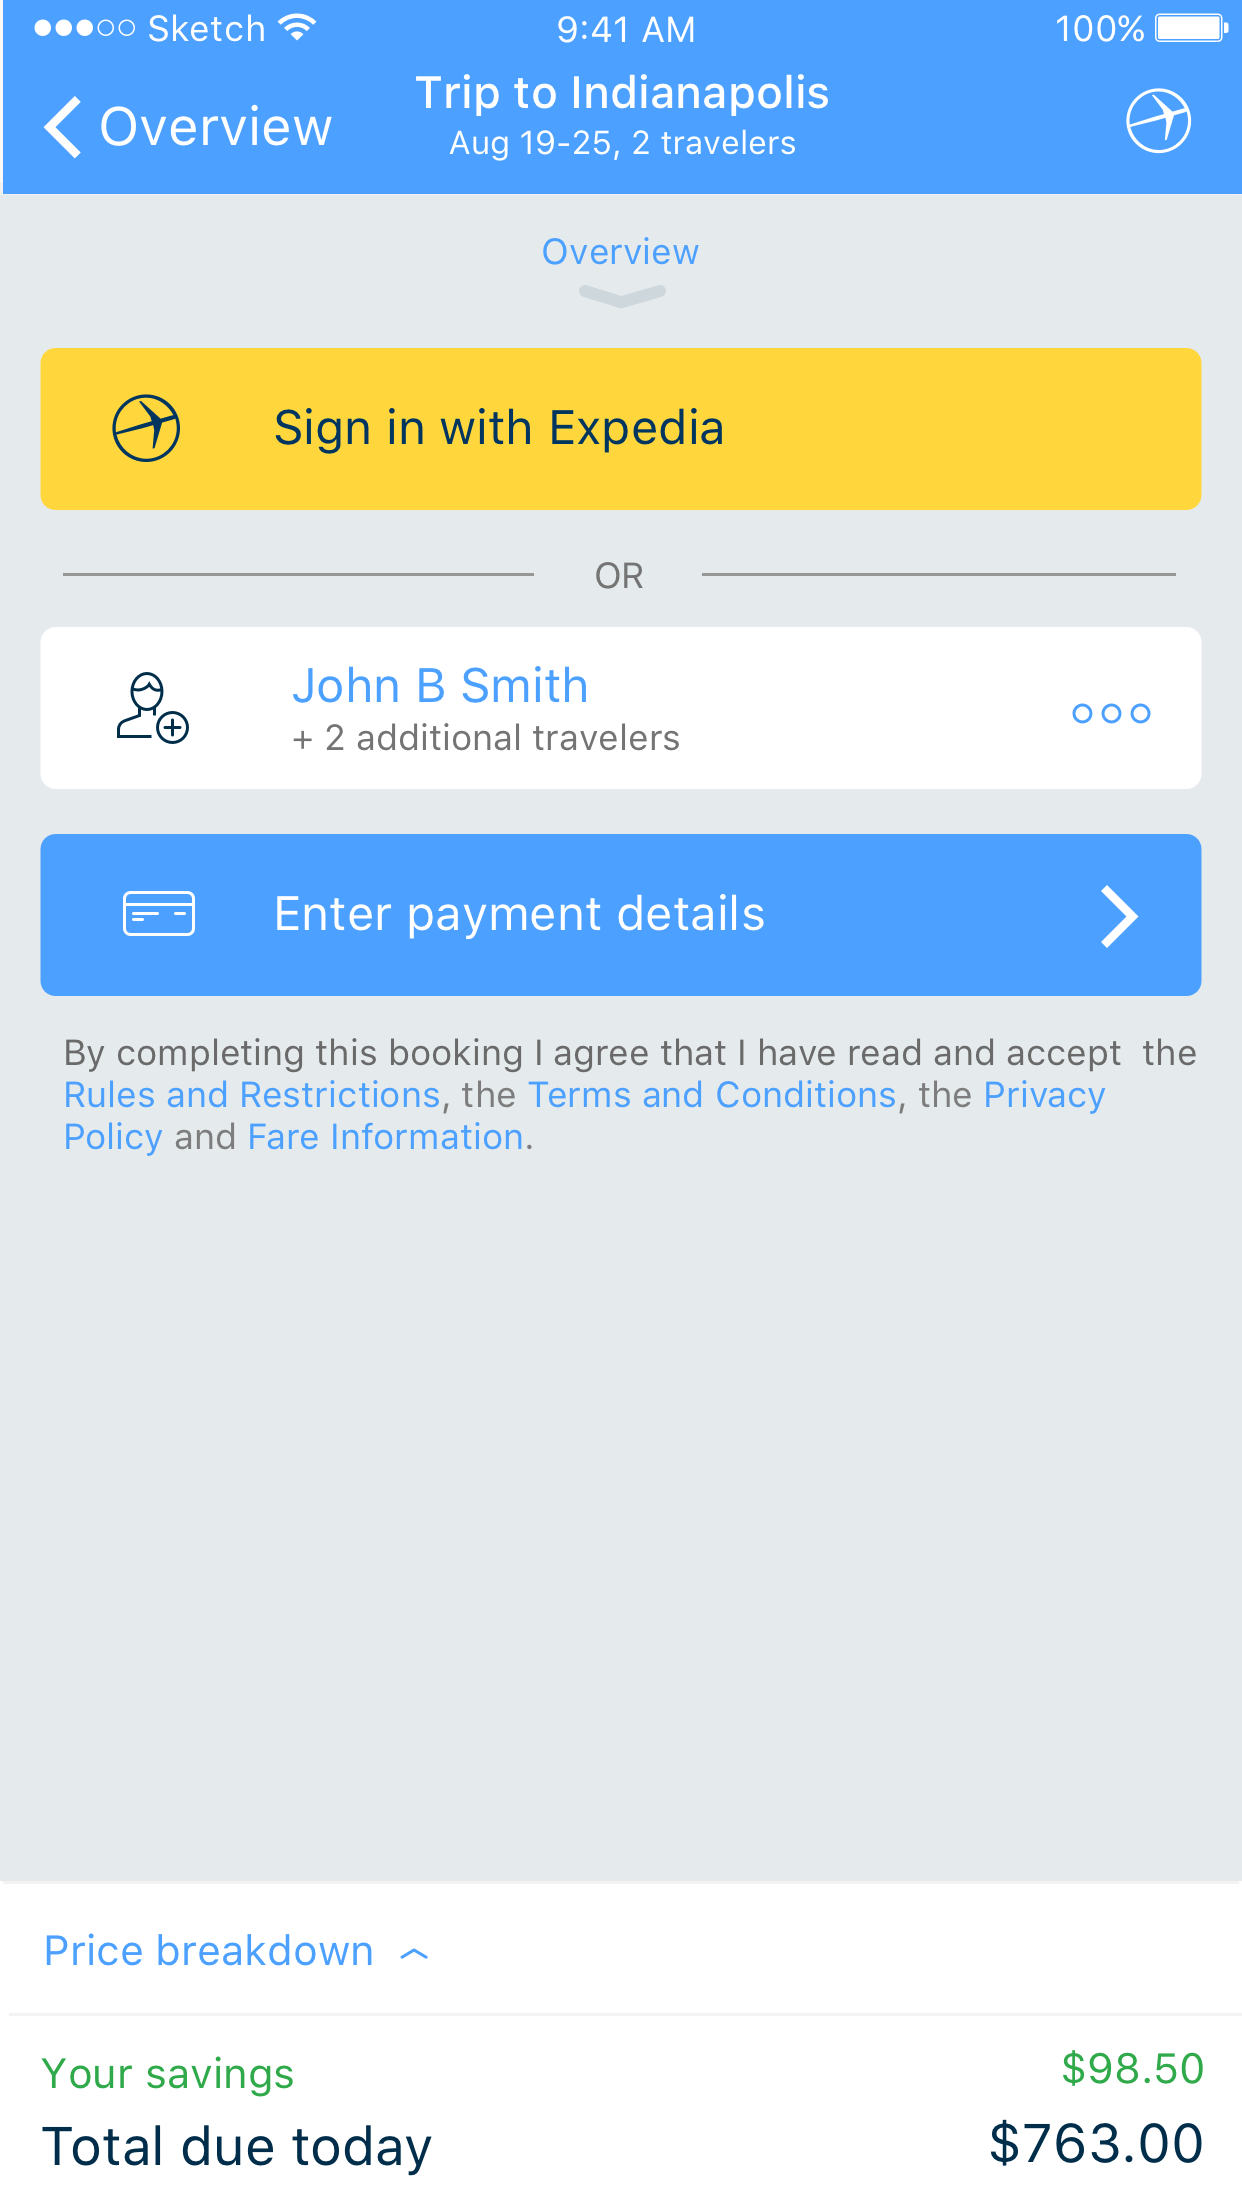 92 - Checkout Payment Details Highlighted Copy 5.png